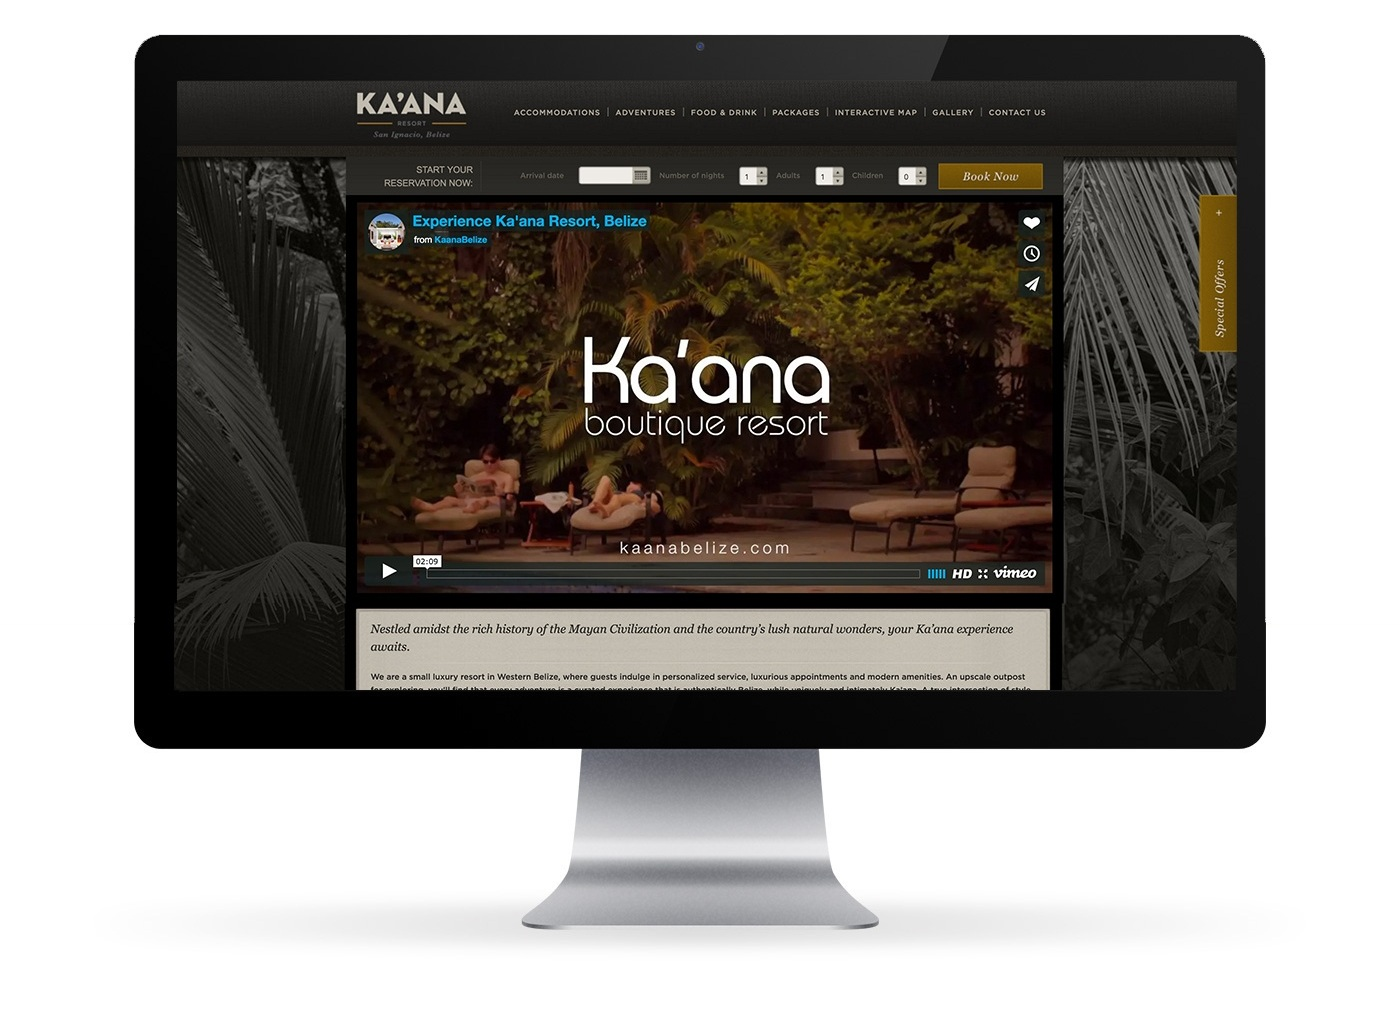 kaana_website_mock